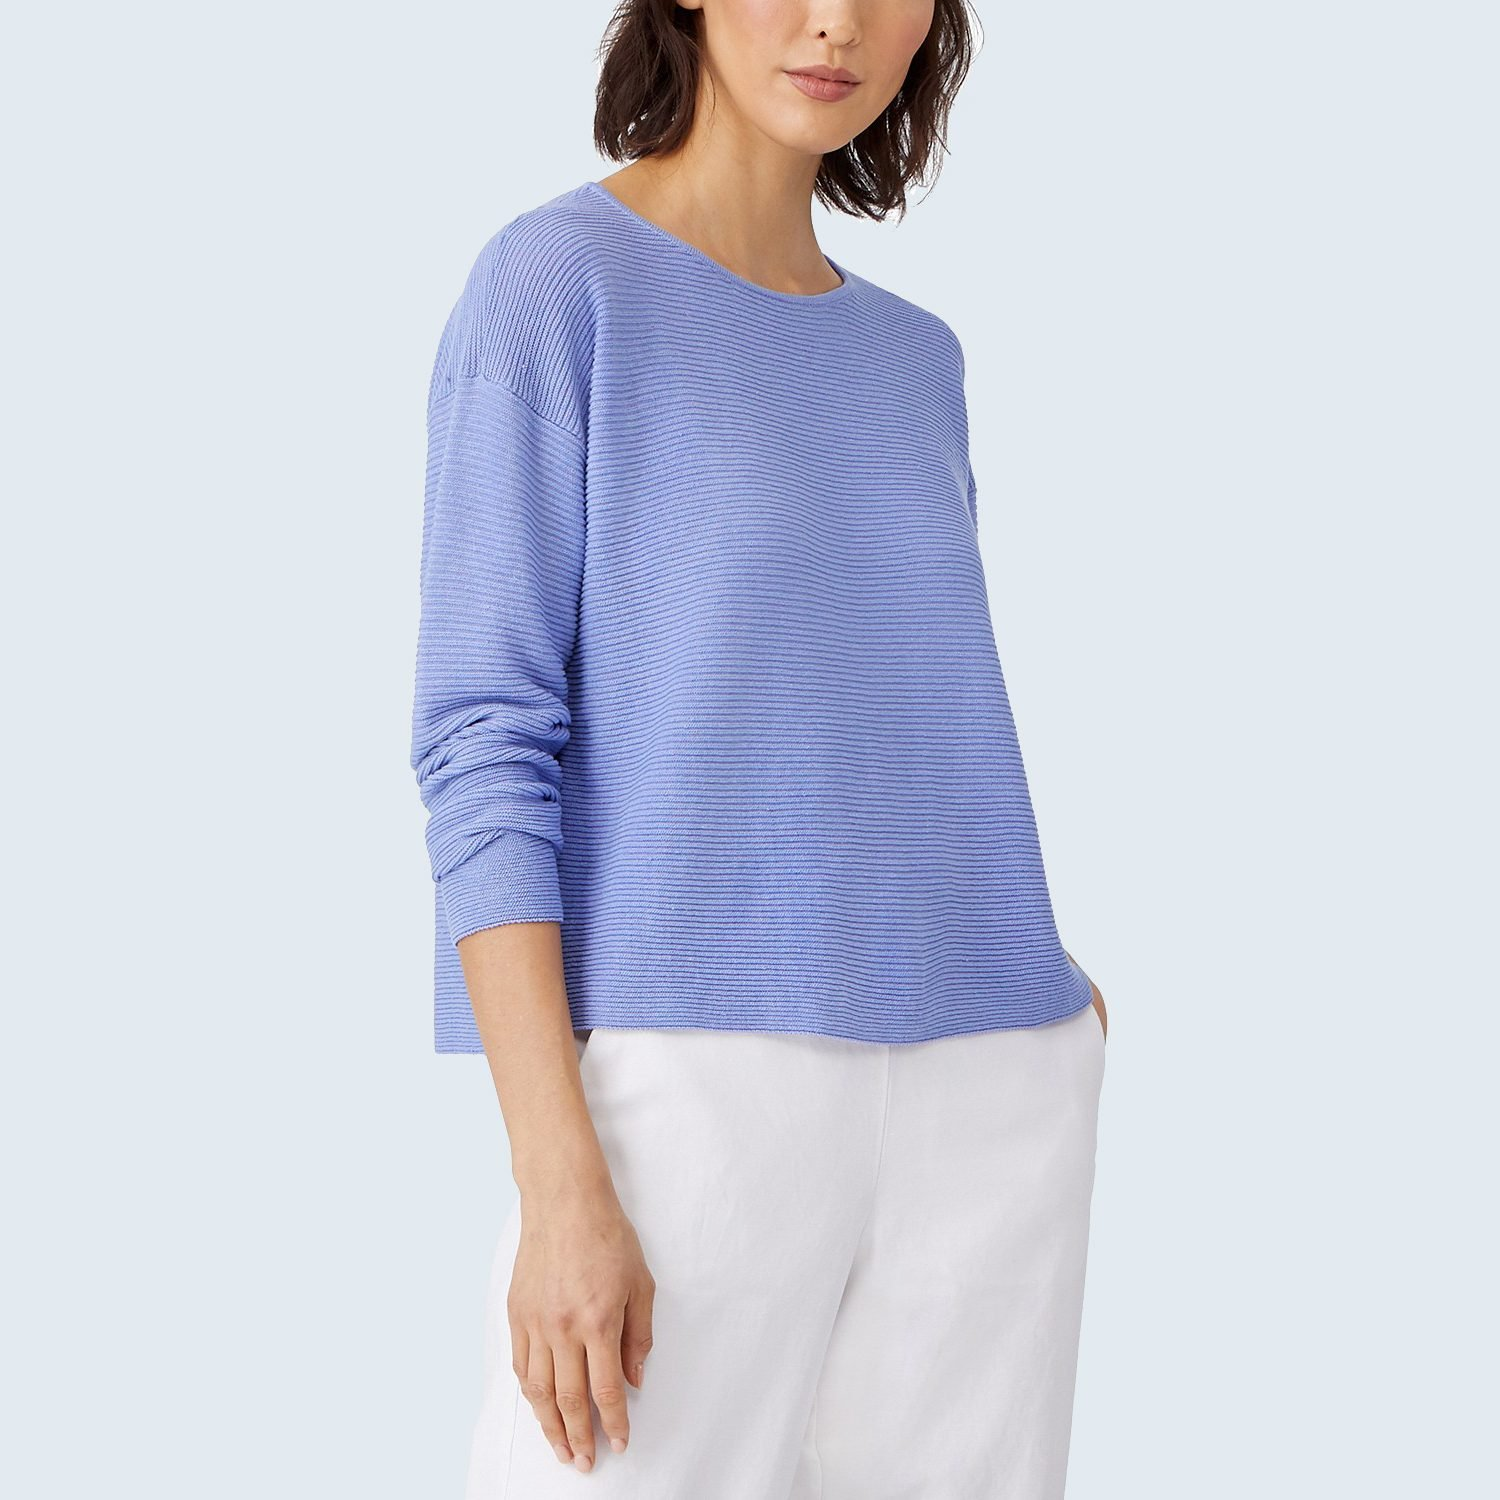 Organic Ribbed Sweater from Eileen Fisher